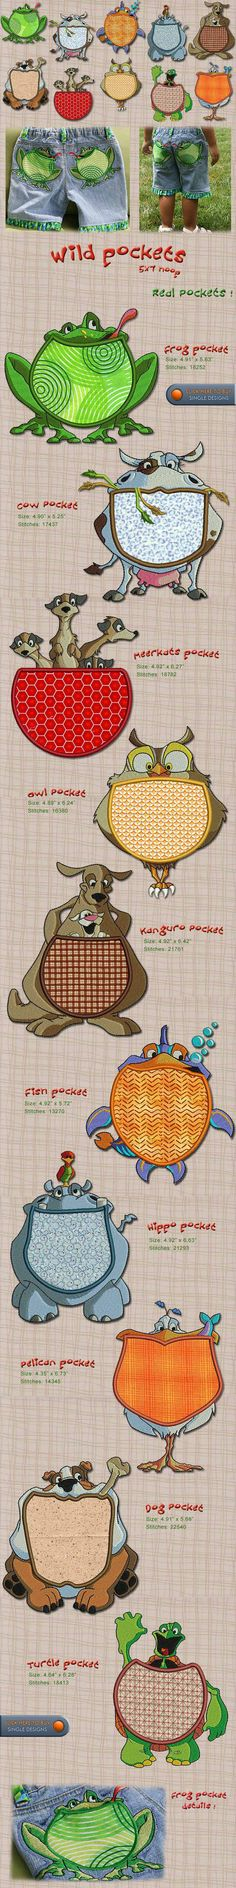 Animals Embroidery Designs Free Embroidery Design Patterns Applique